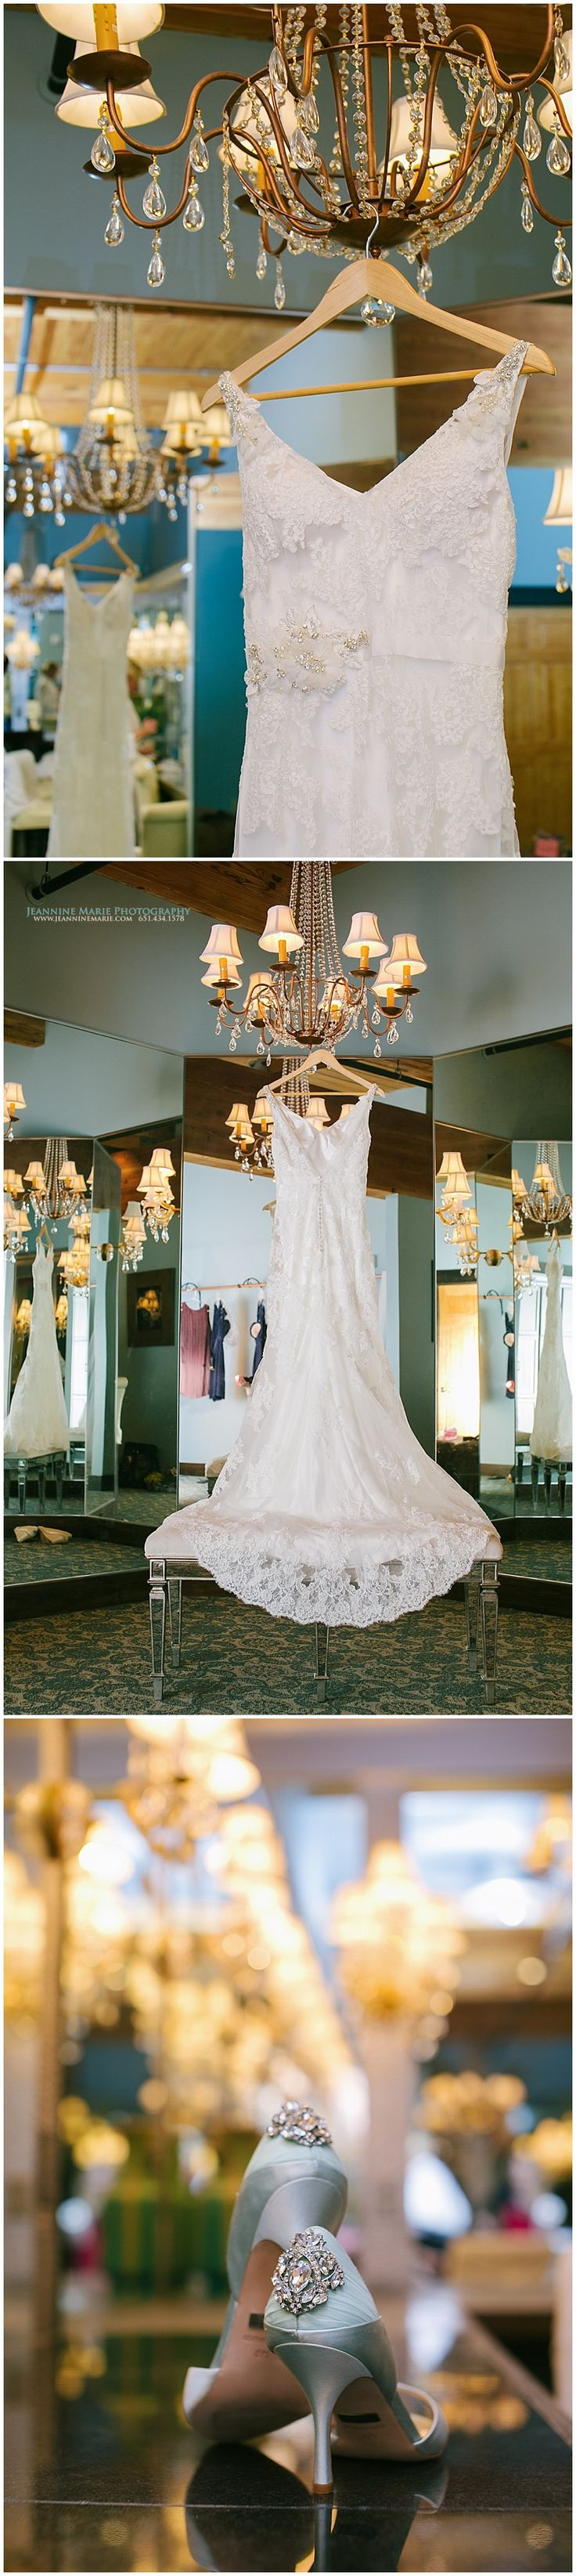 45 best bridal gowns and wedding dresses images on for Wedding dresses st paul mn